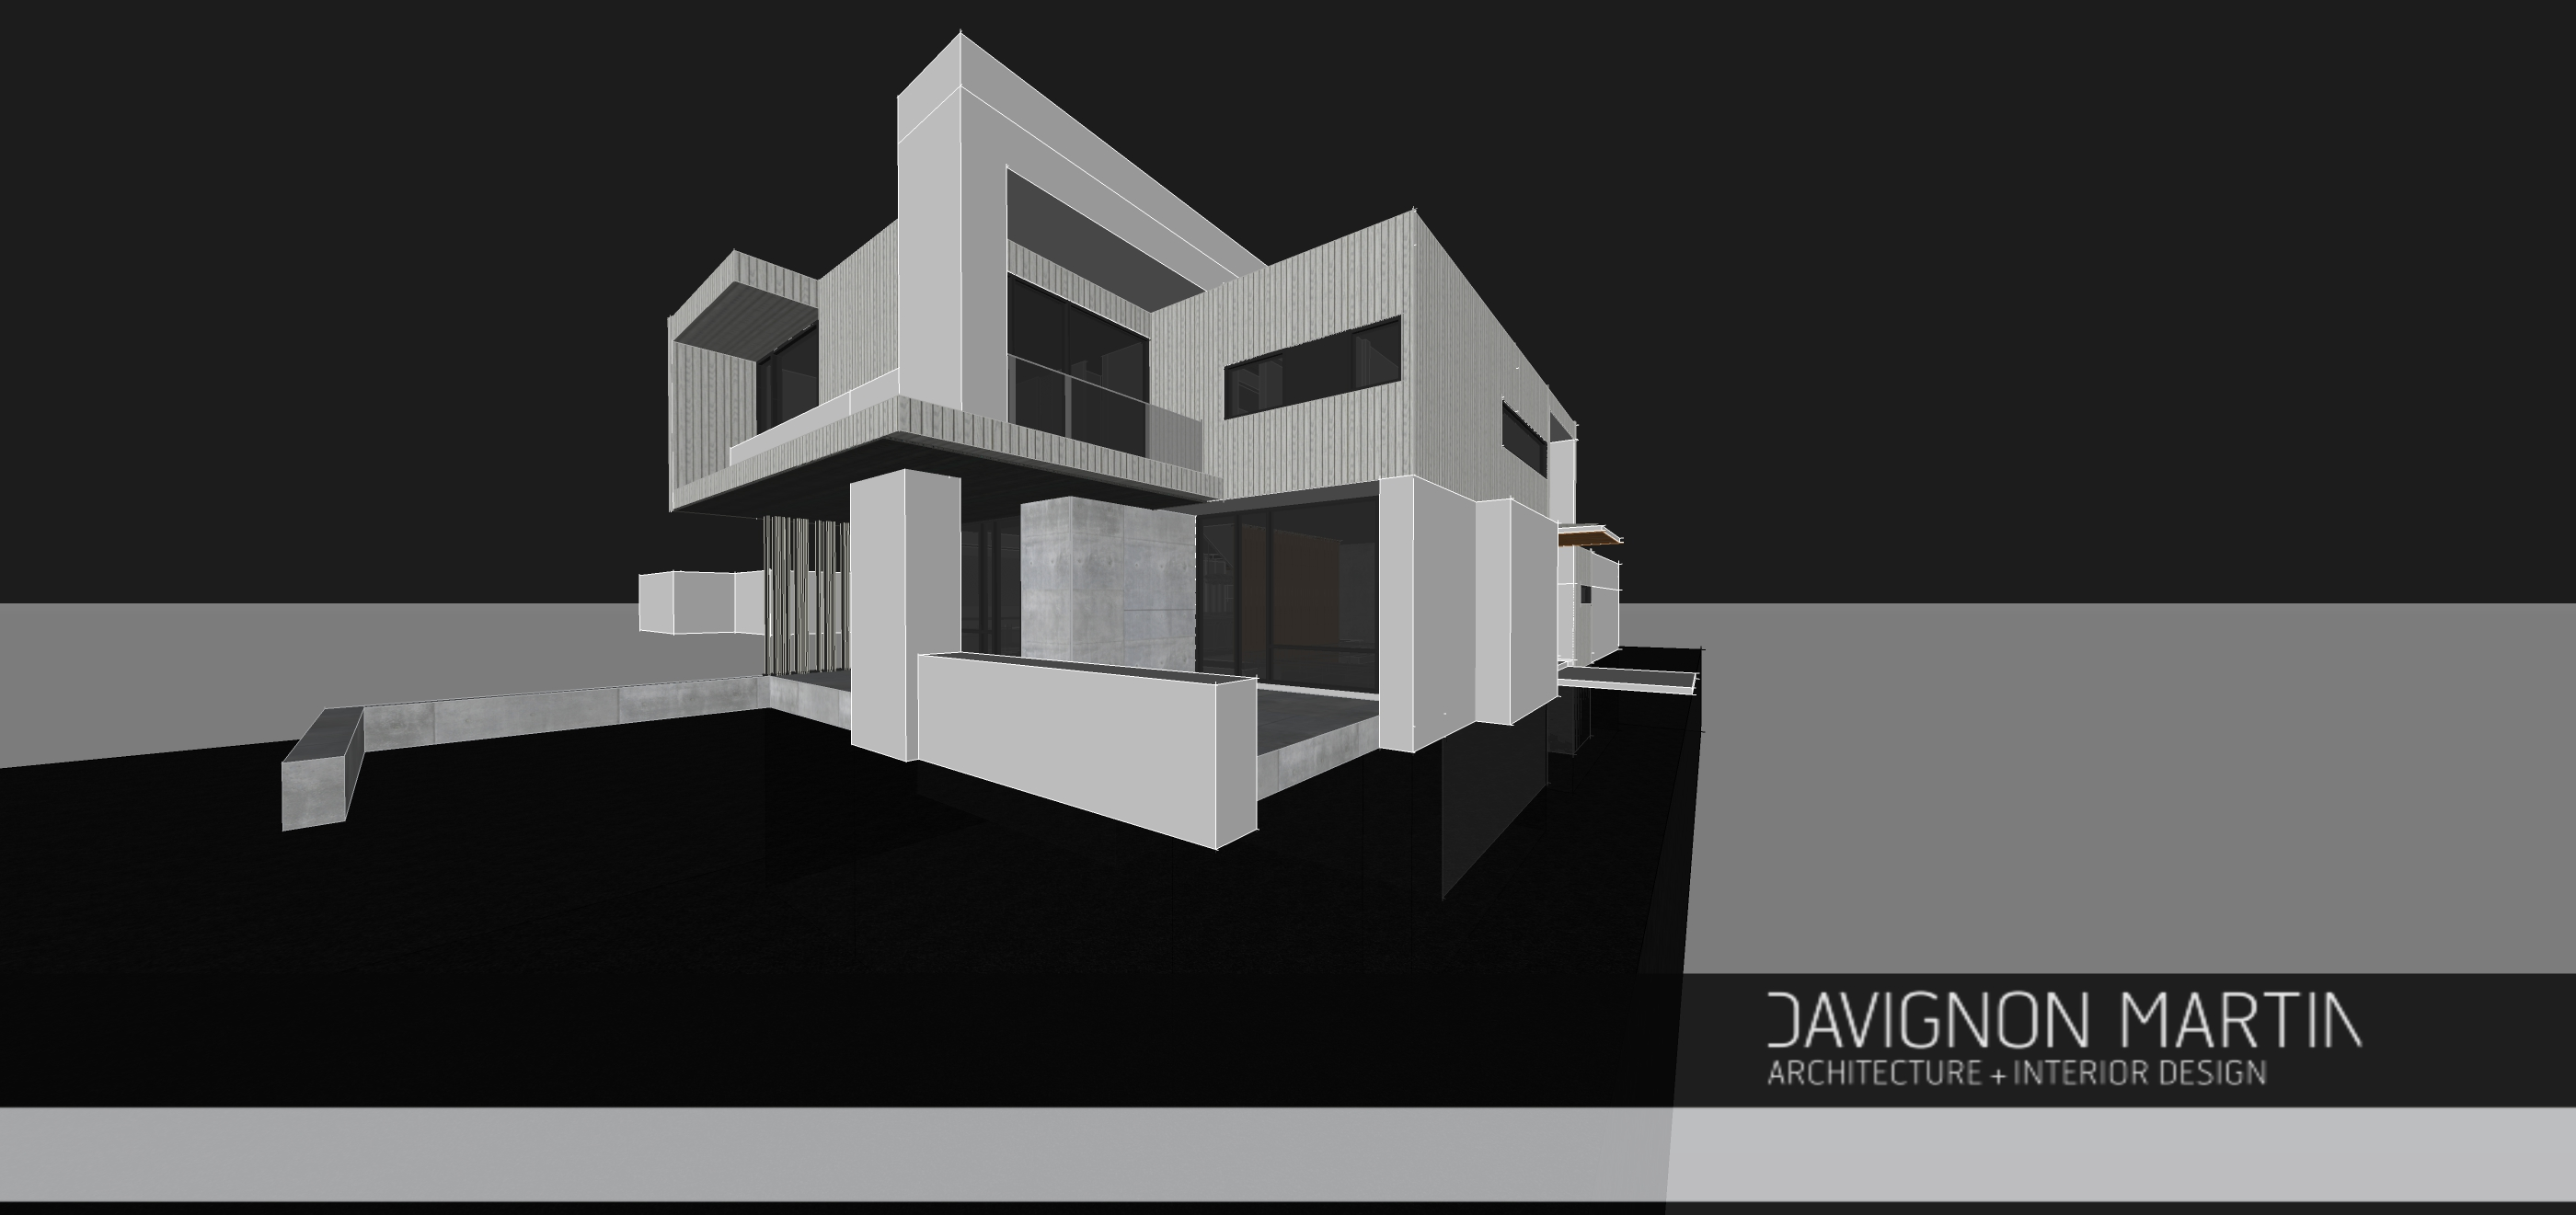 The truth about so called boxy houses davignon martin for Solid void theory architecture